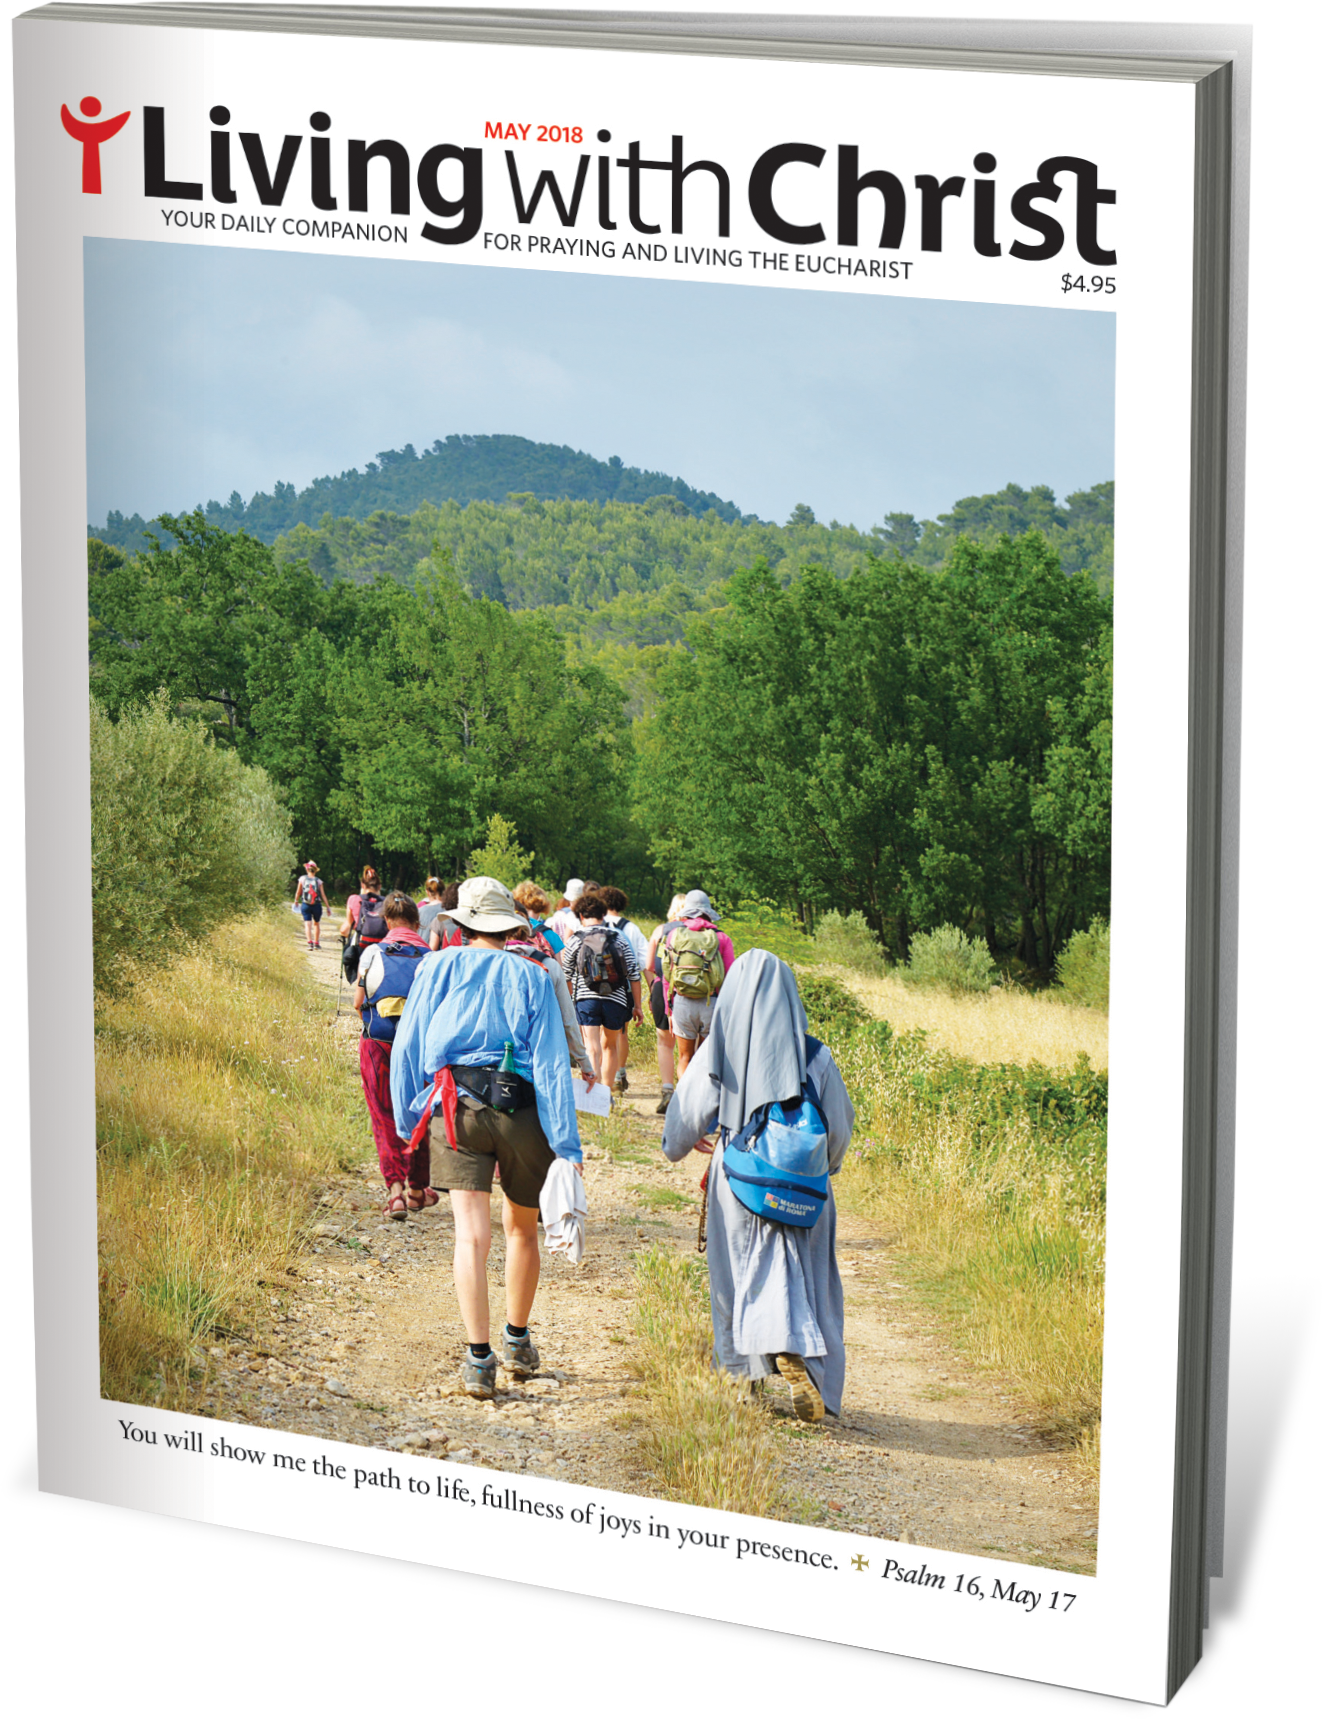 Living with Christ - Your daily companion for praying and